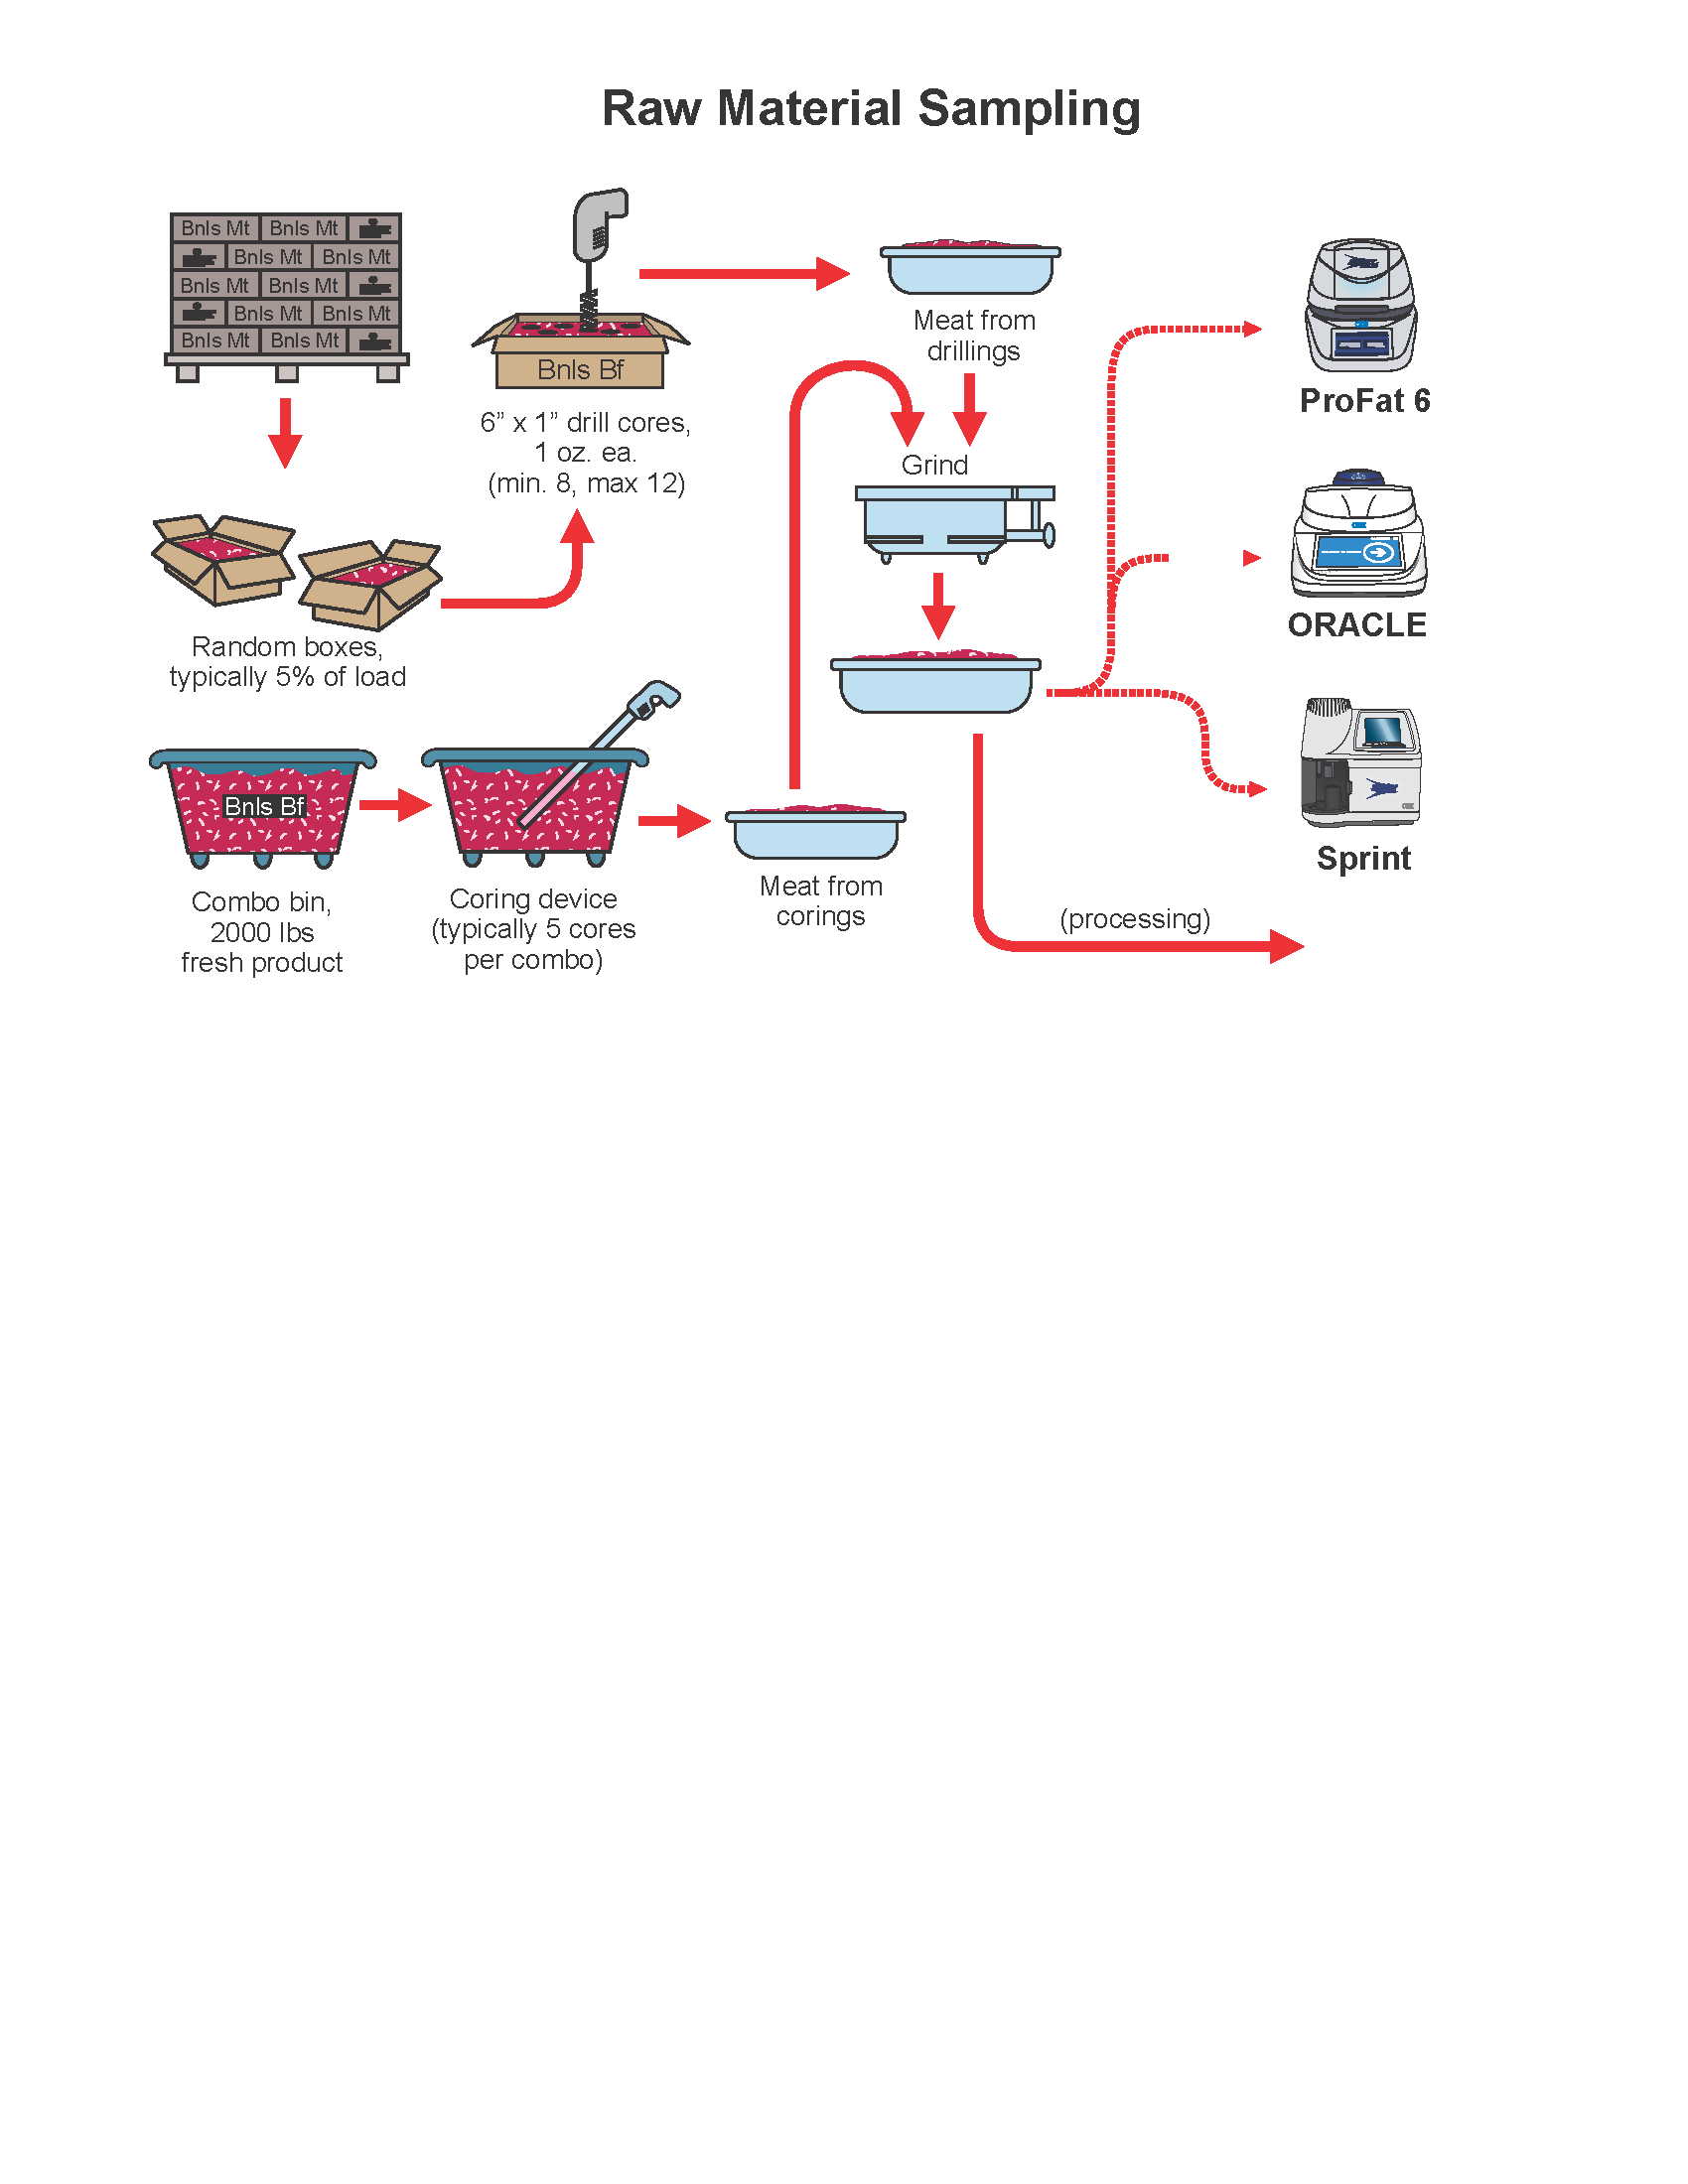 Process Flow Diagram Raw Material Great Installation Of Wiring Engineering Sampling Rh Cem Com Manufacturing